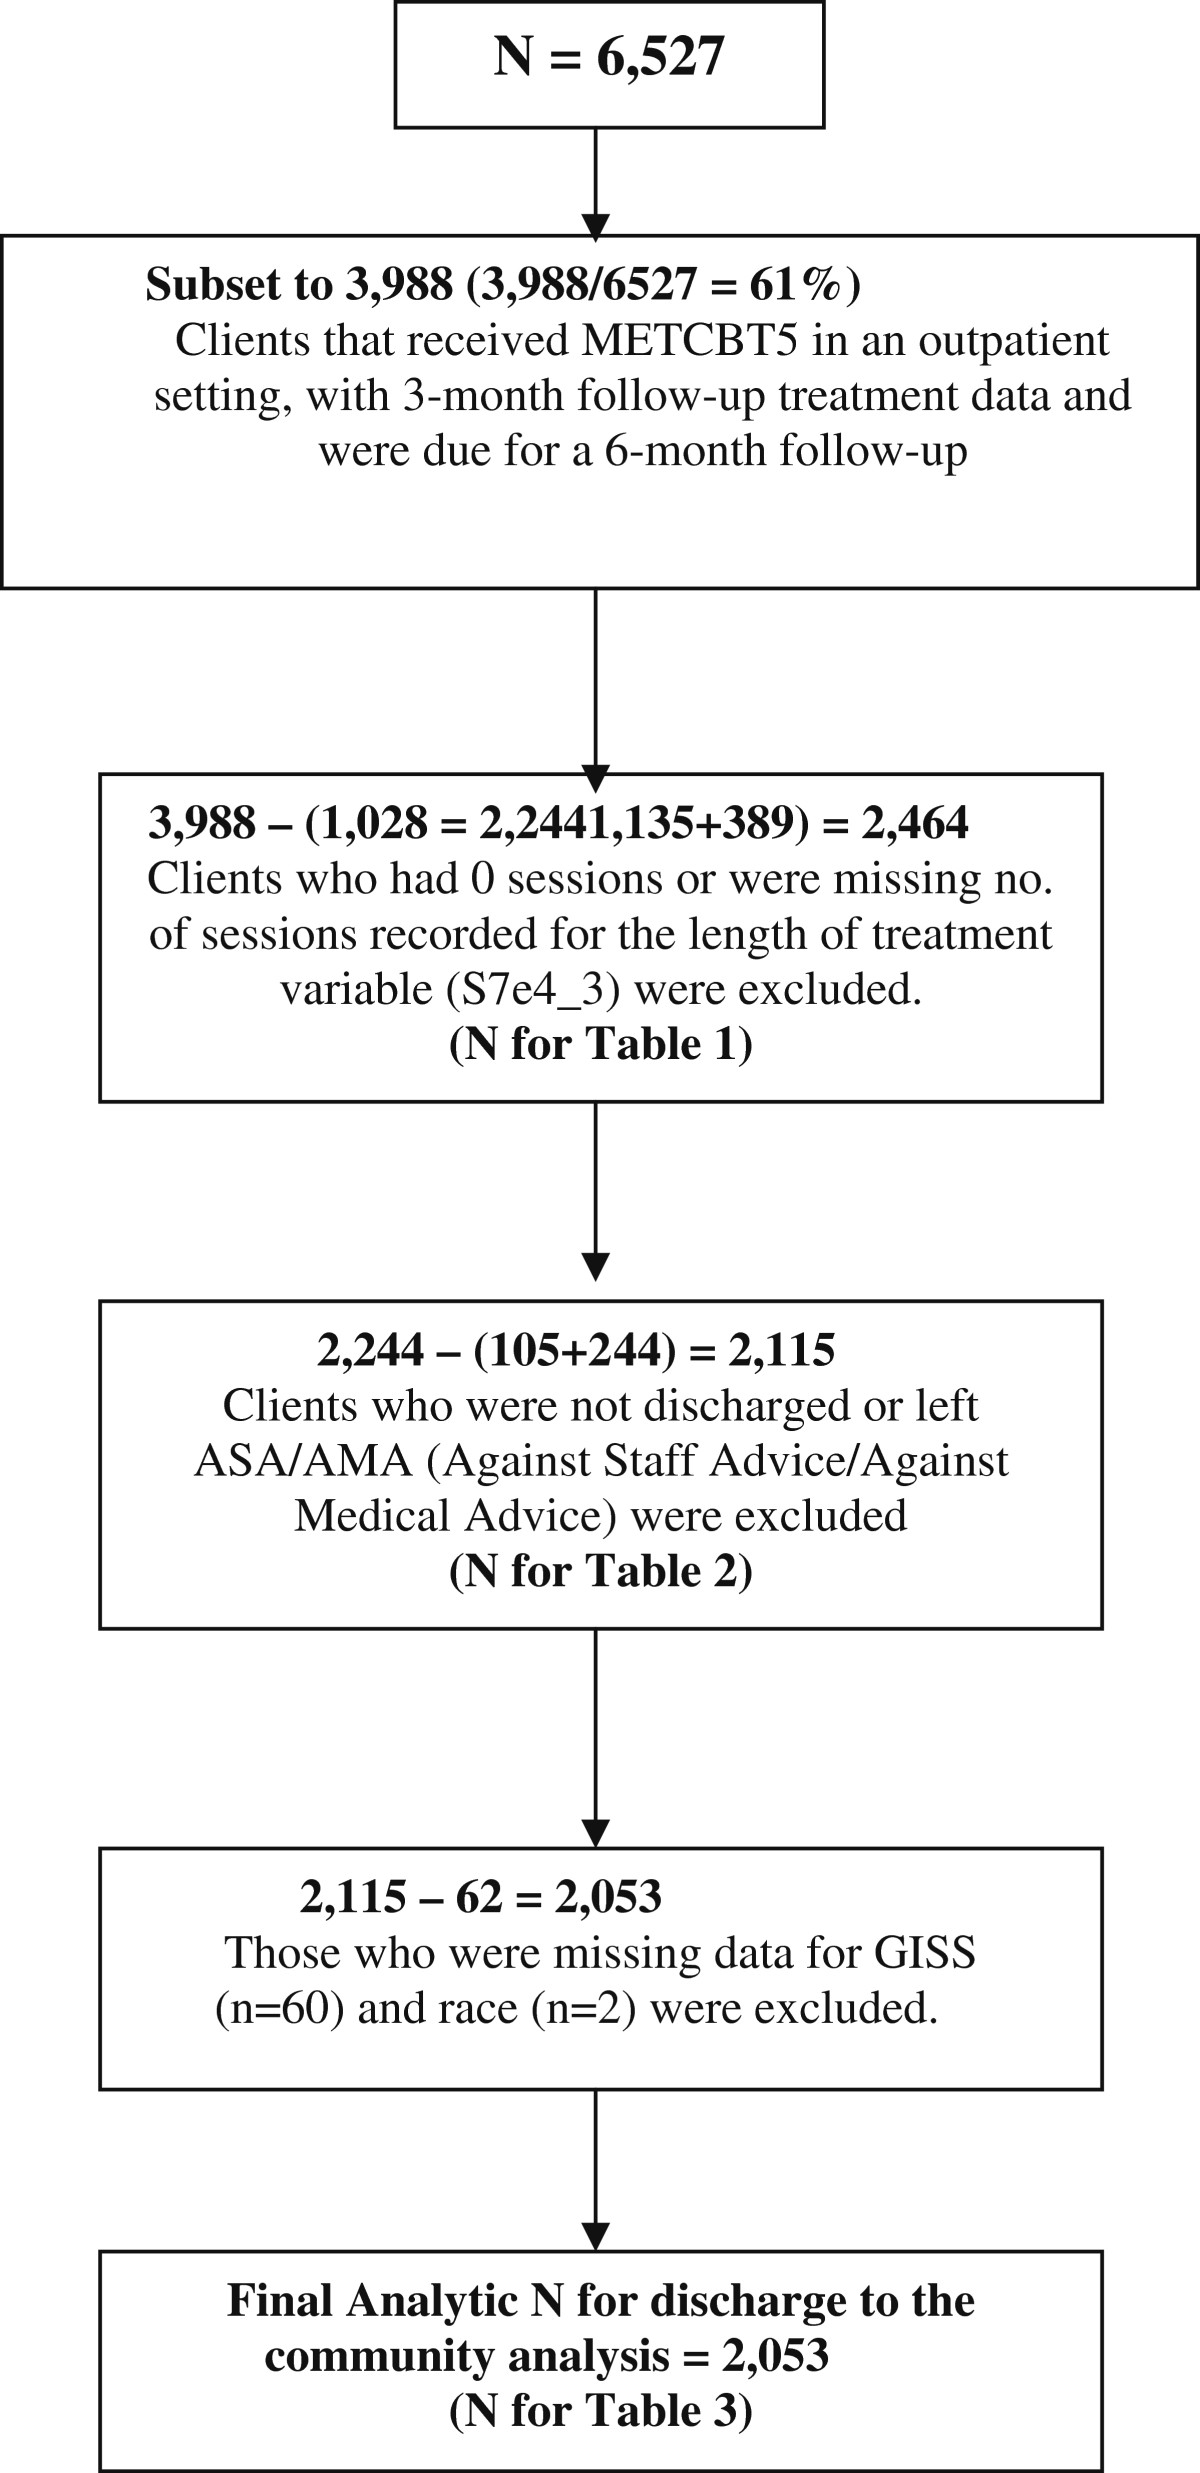 https://static-content.springer.com/image/art%3A10.1186%2F1747-597X-7-35/MediaObjects/13011_2011_Article_244_Fig1_HTML.jpg